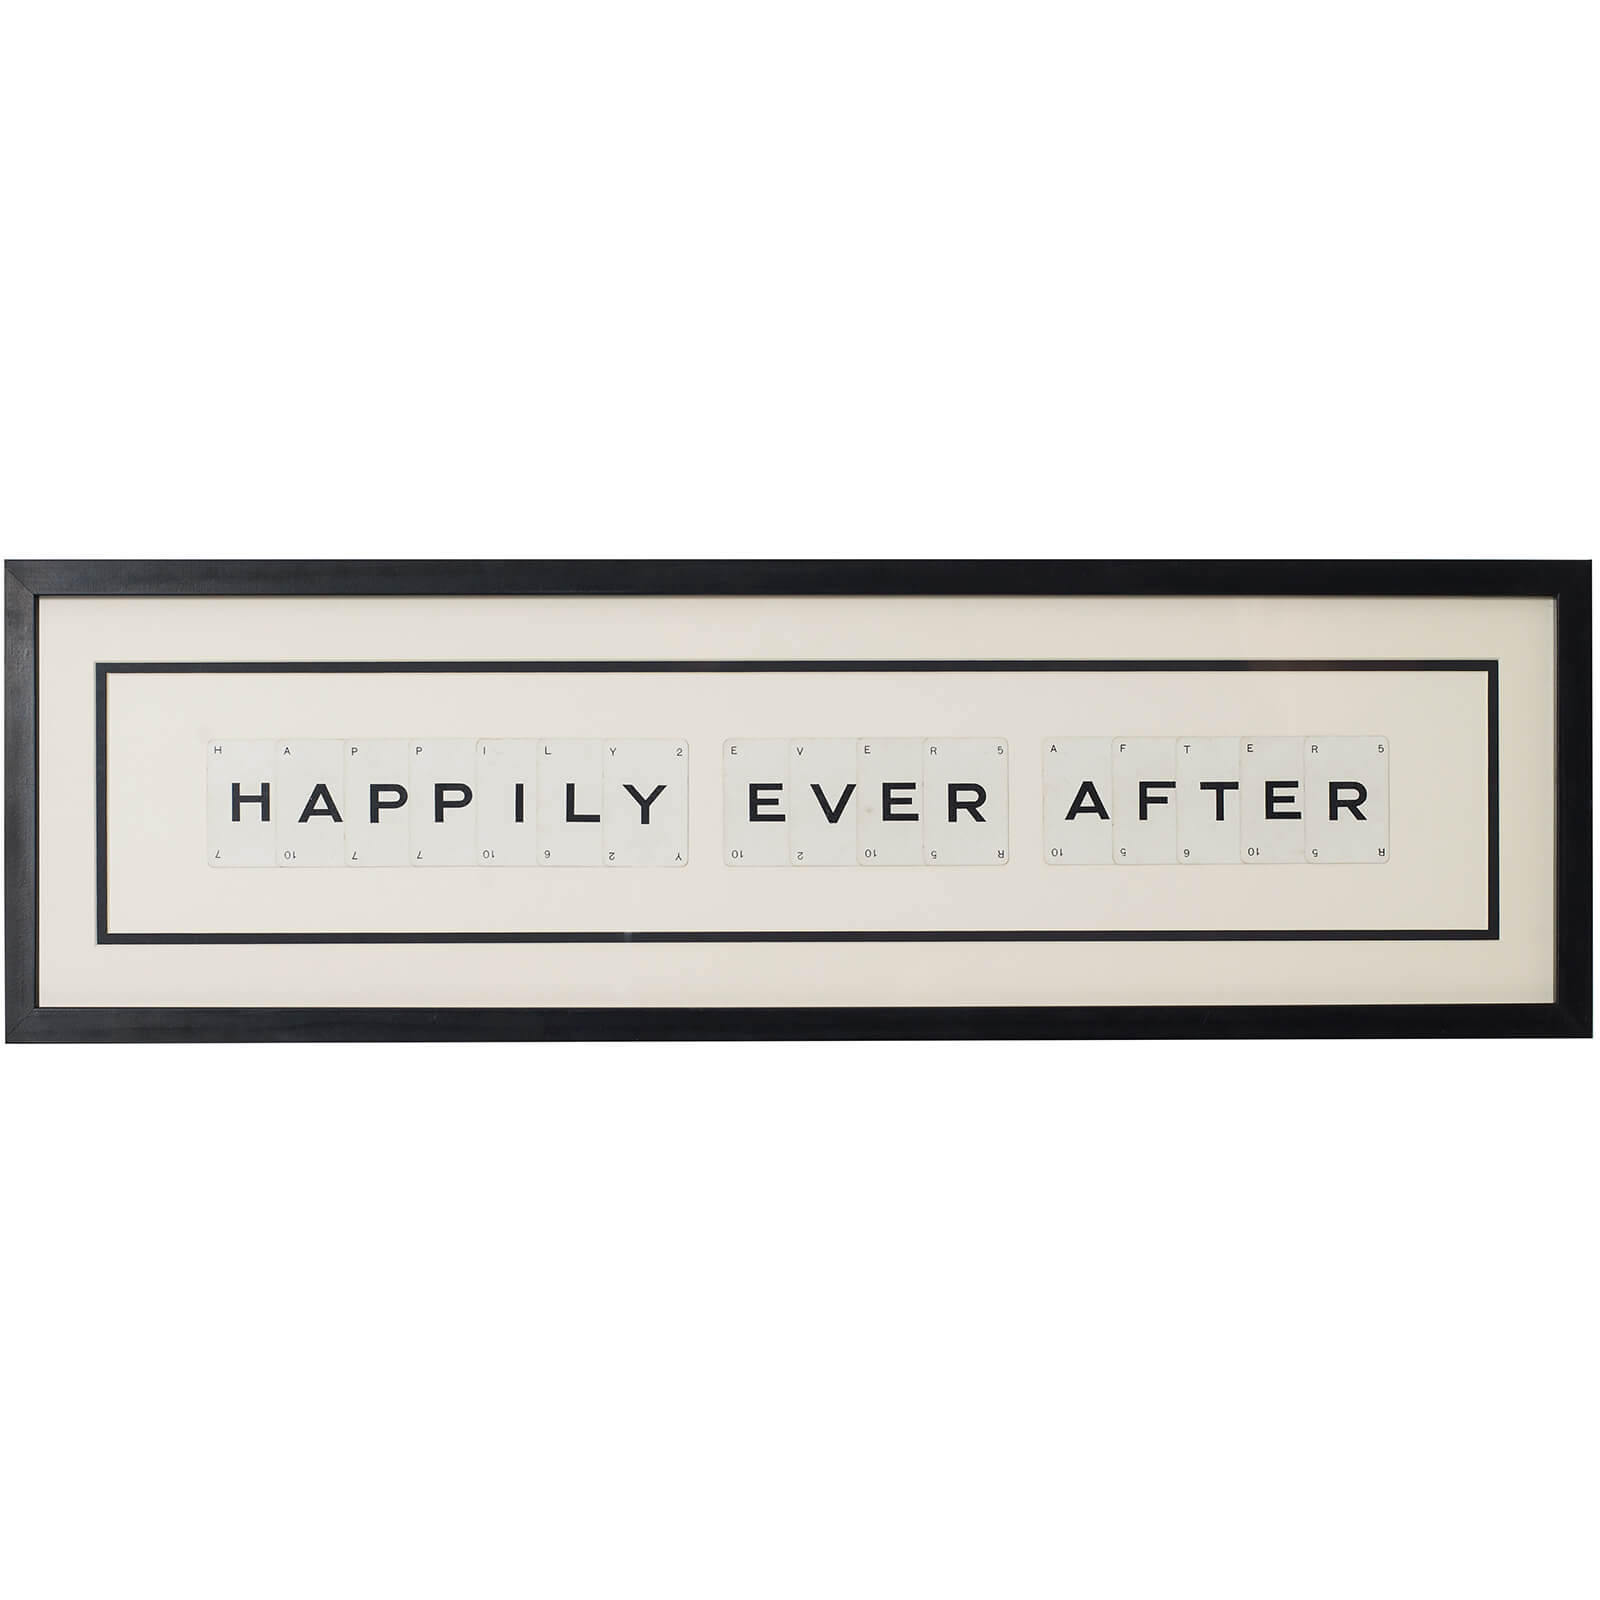 Vintage Playing Cards Happily Ever After Framed Wall Art